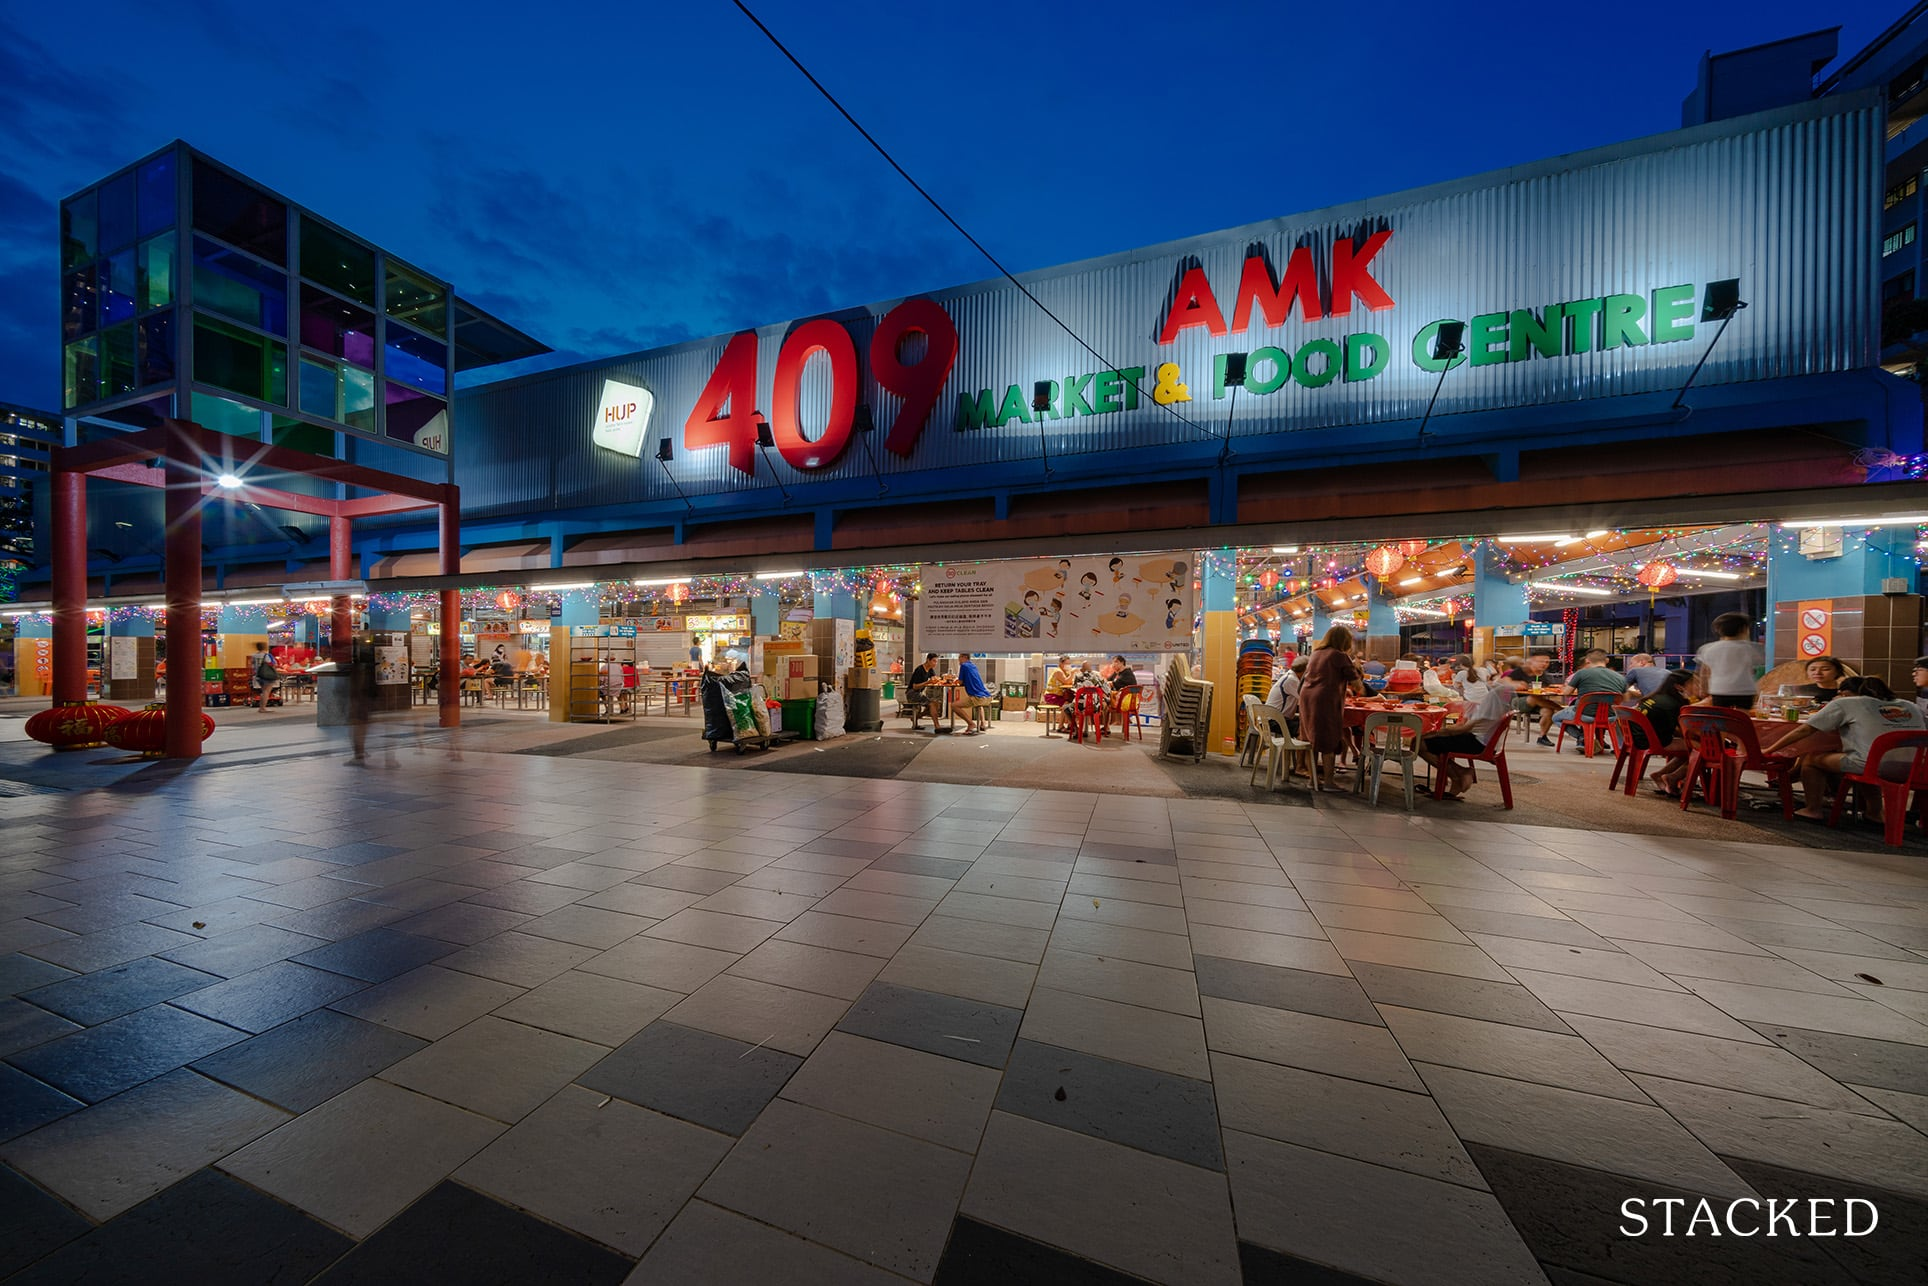 Ang Mo Kio food centre